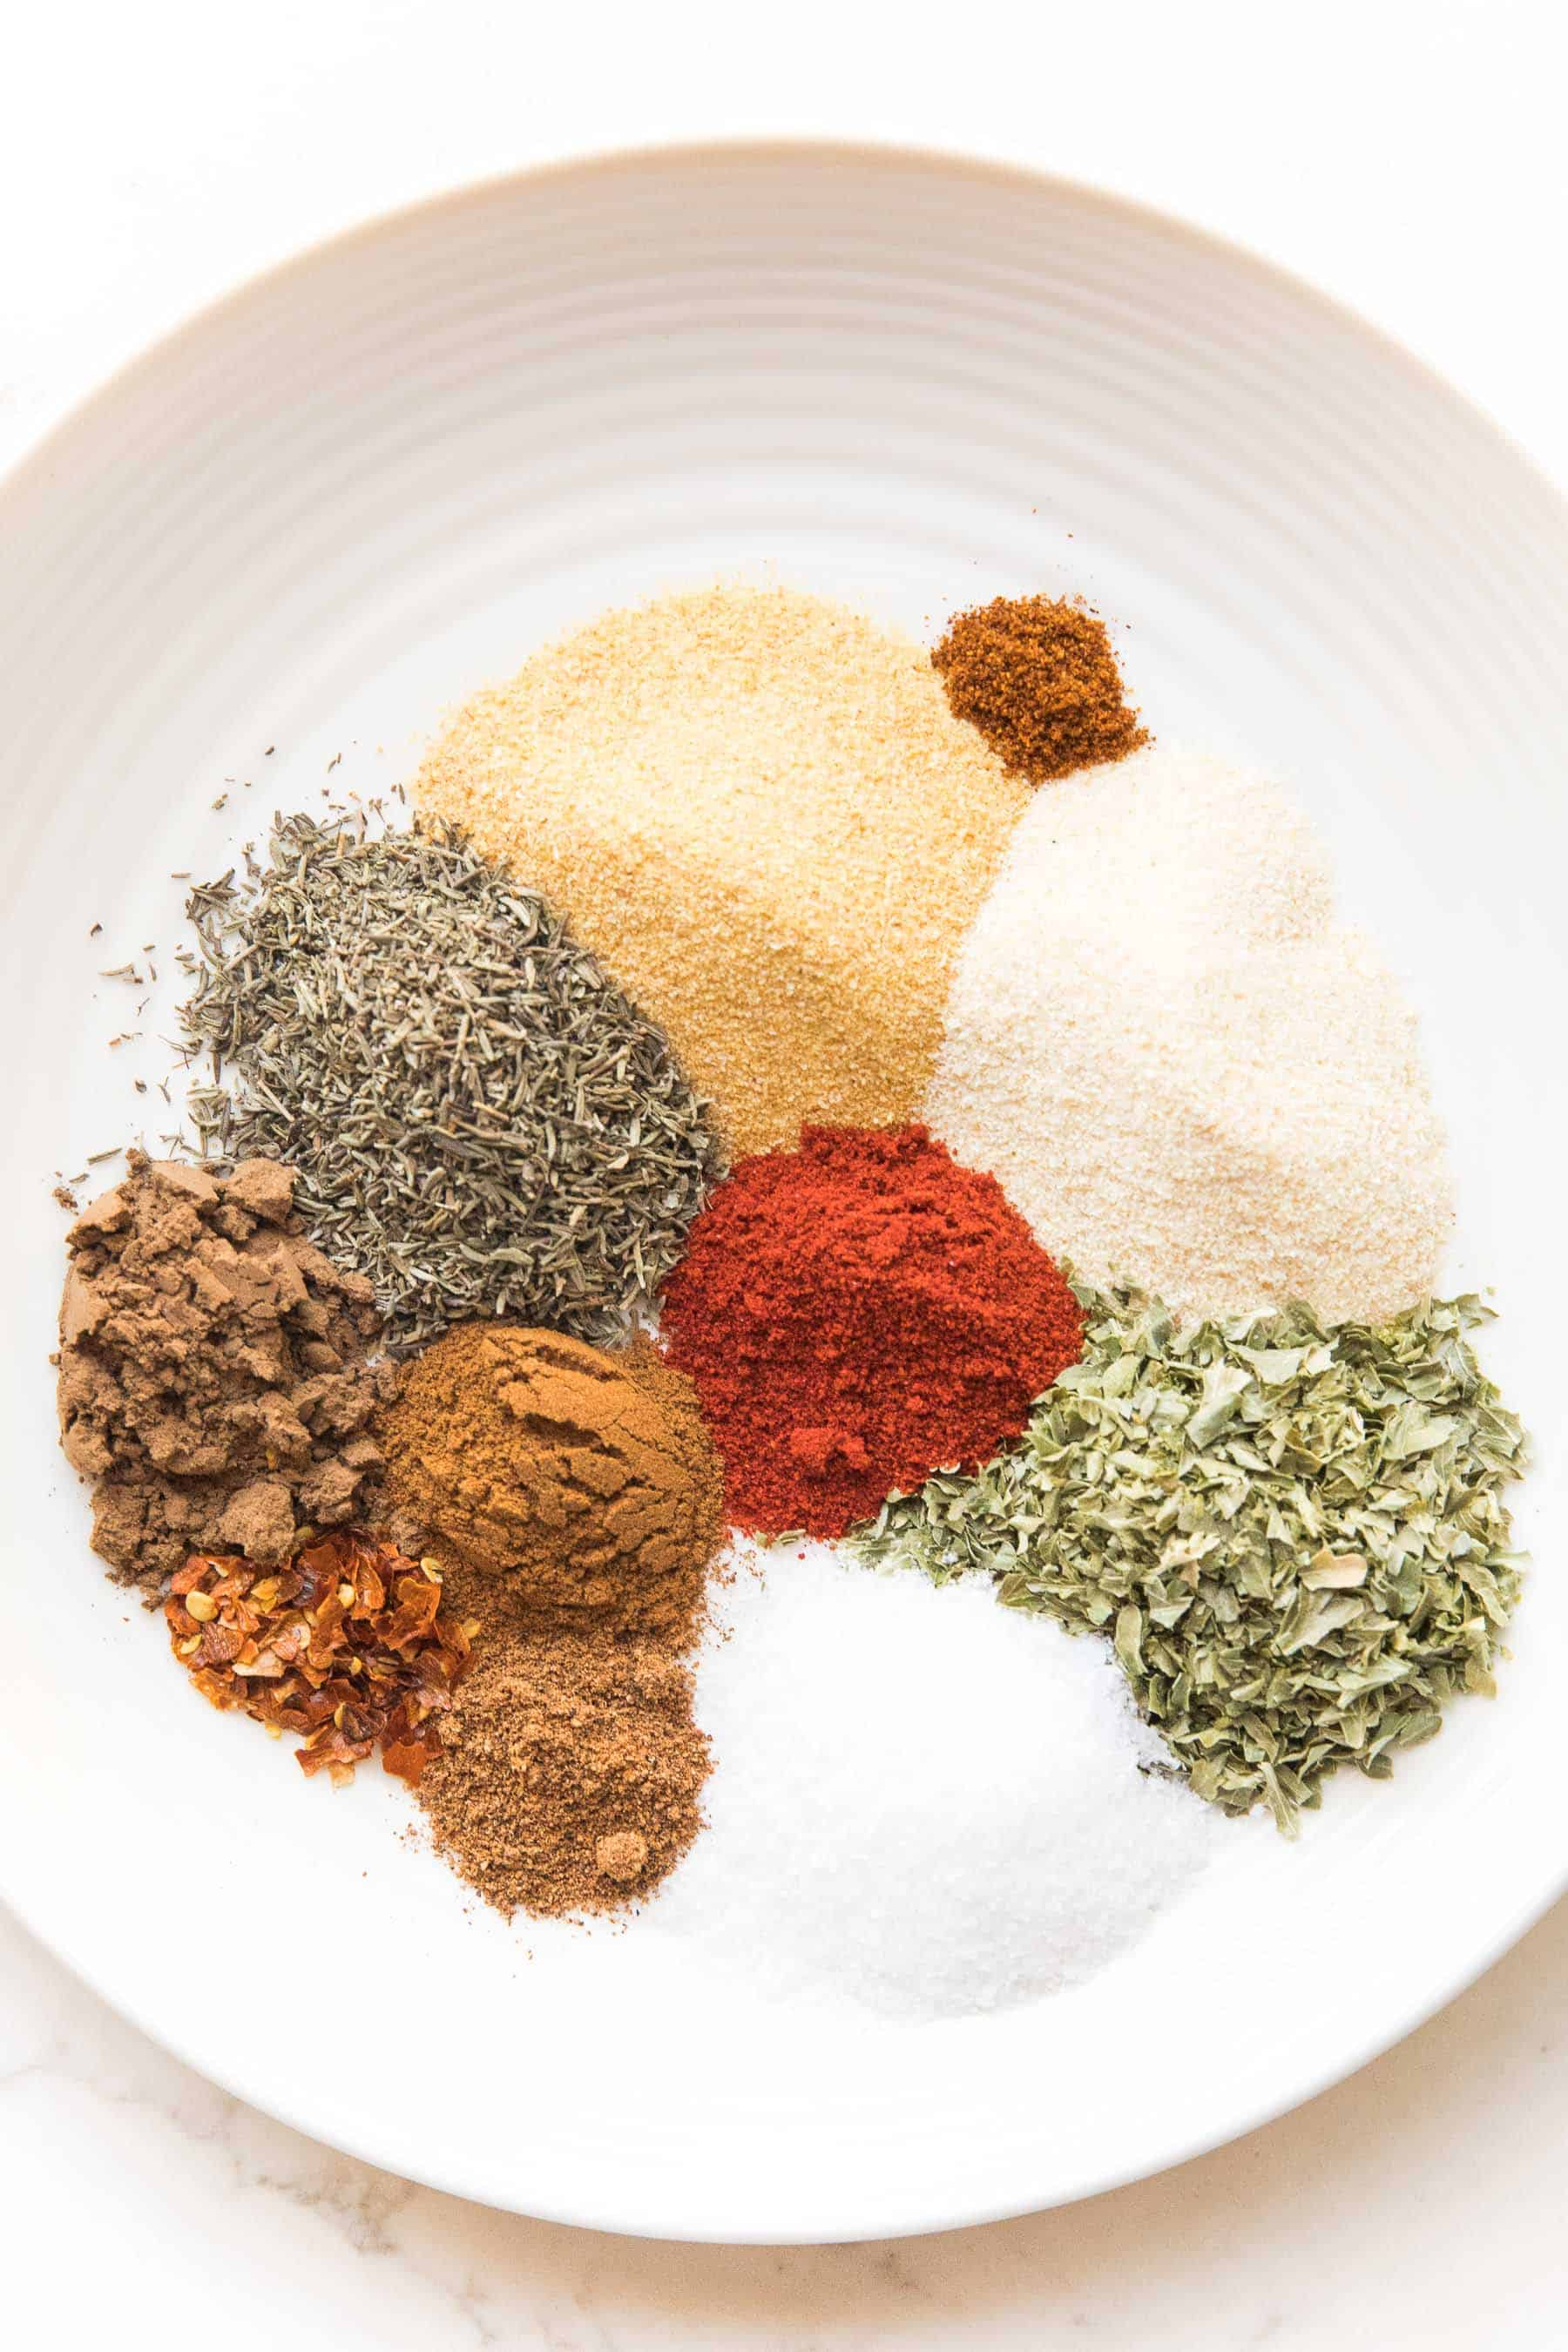 blend of spices for jamaican jerk seasoning on a white plate